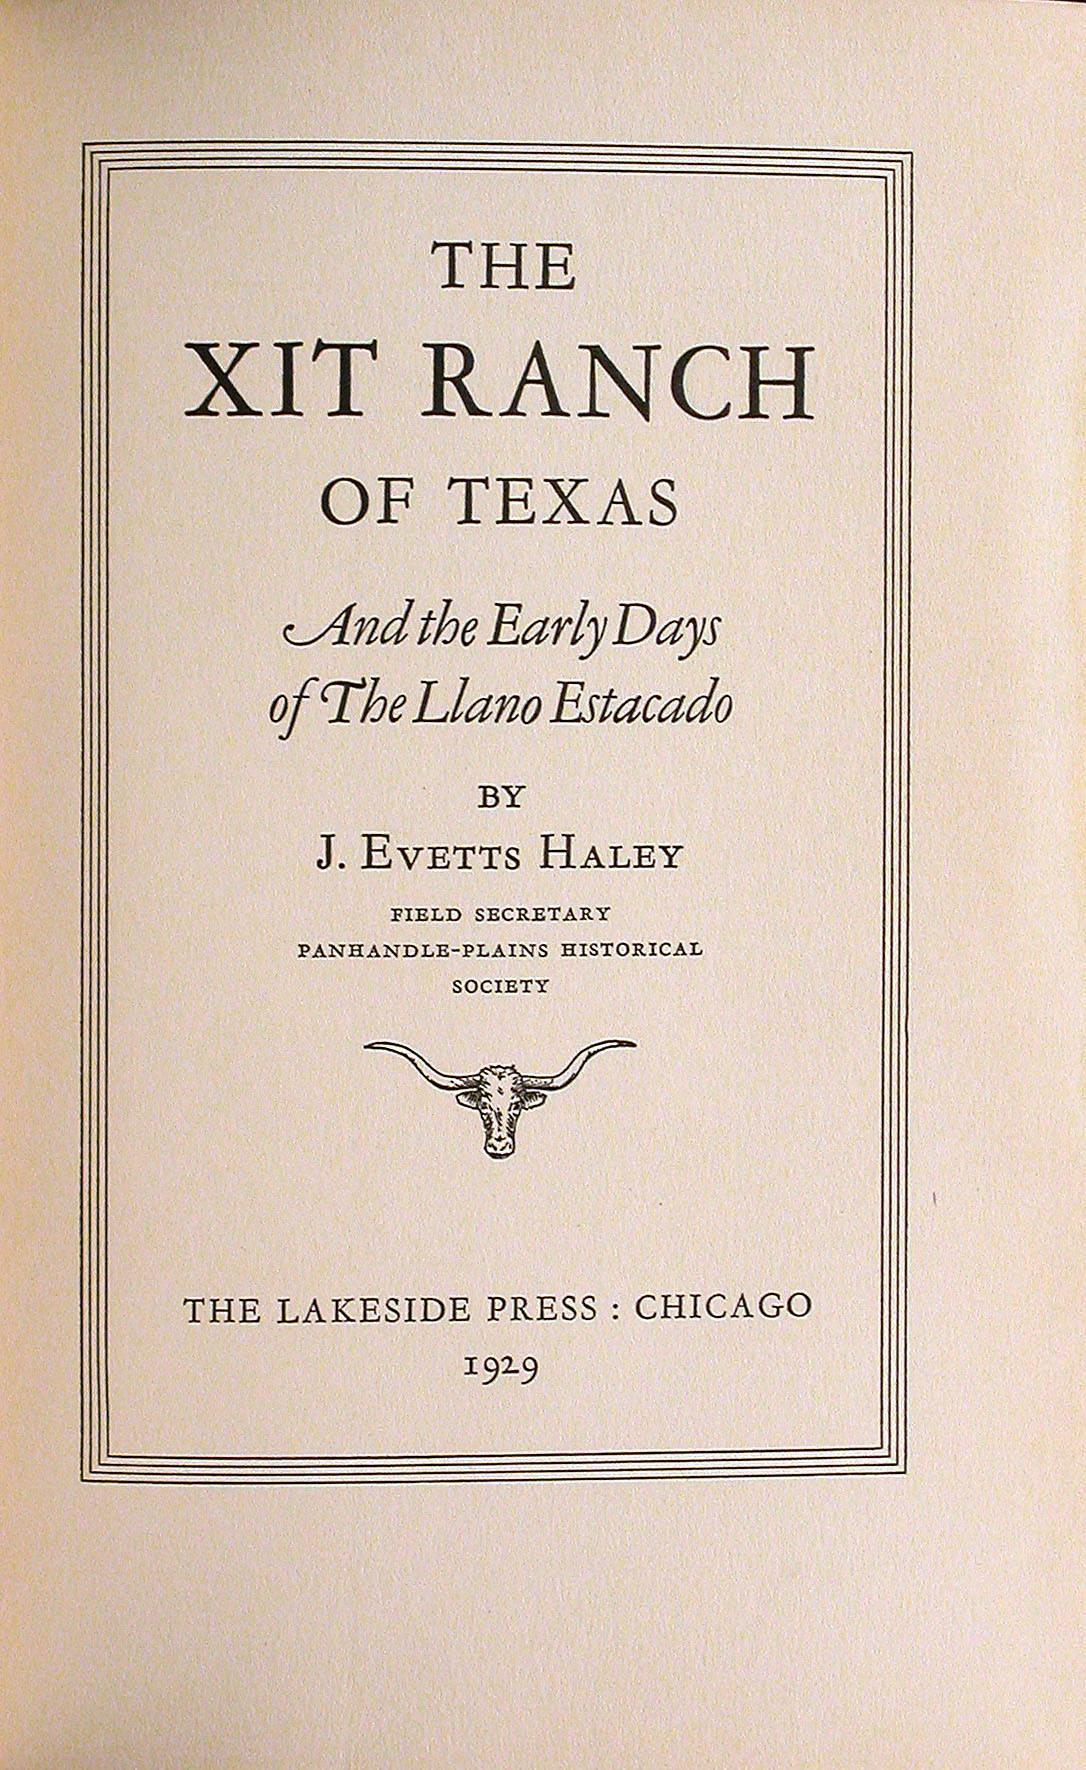 Map Of Xit Ranch Texas.The Xit Ranch Of Texas And The Early Days Of The Llano Estacado